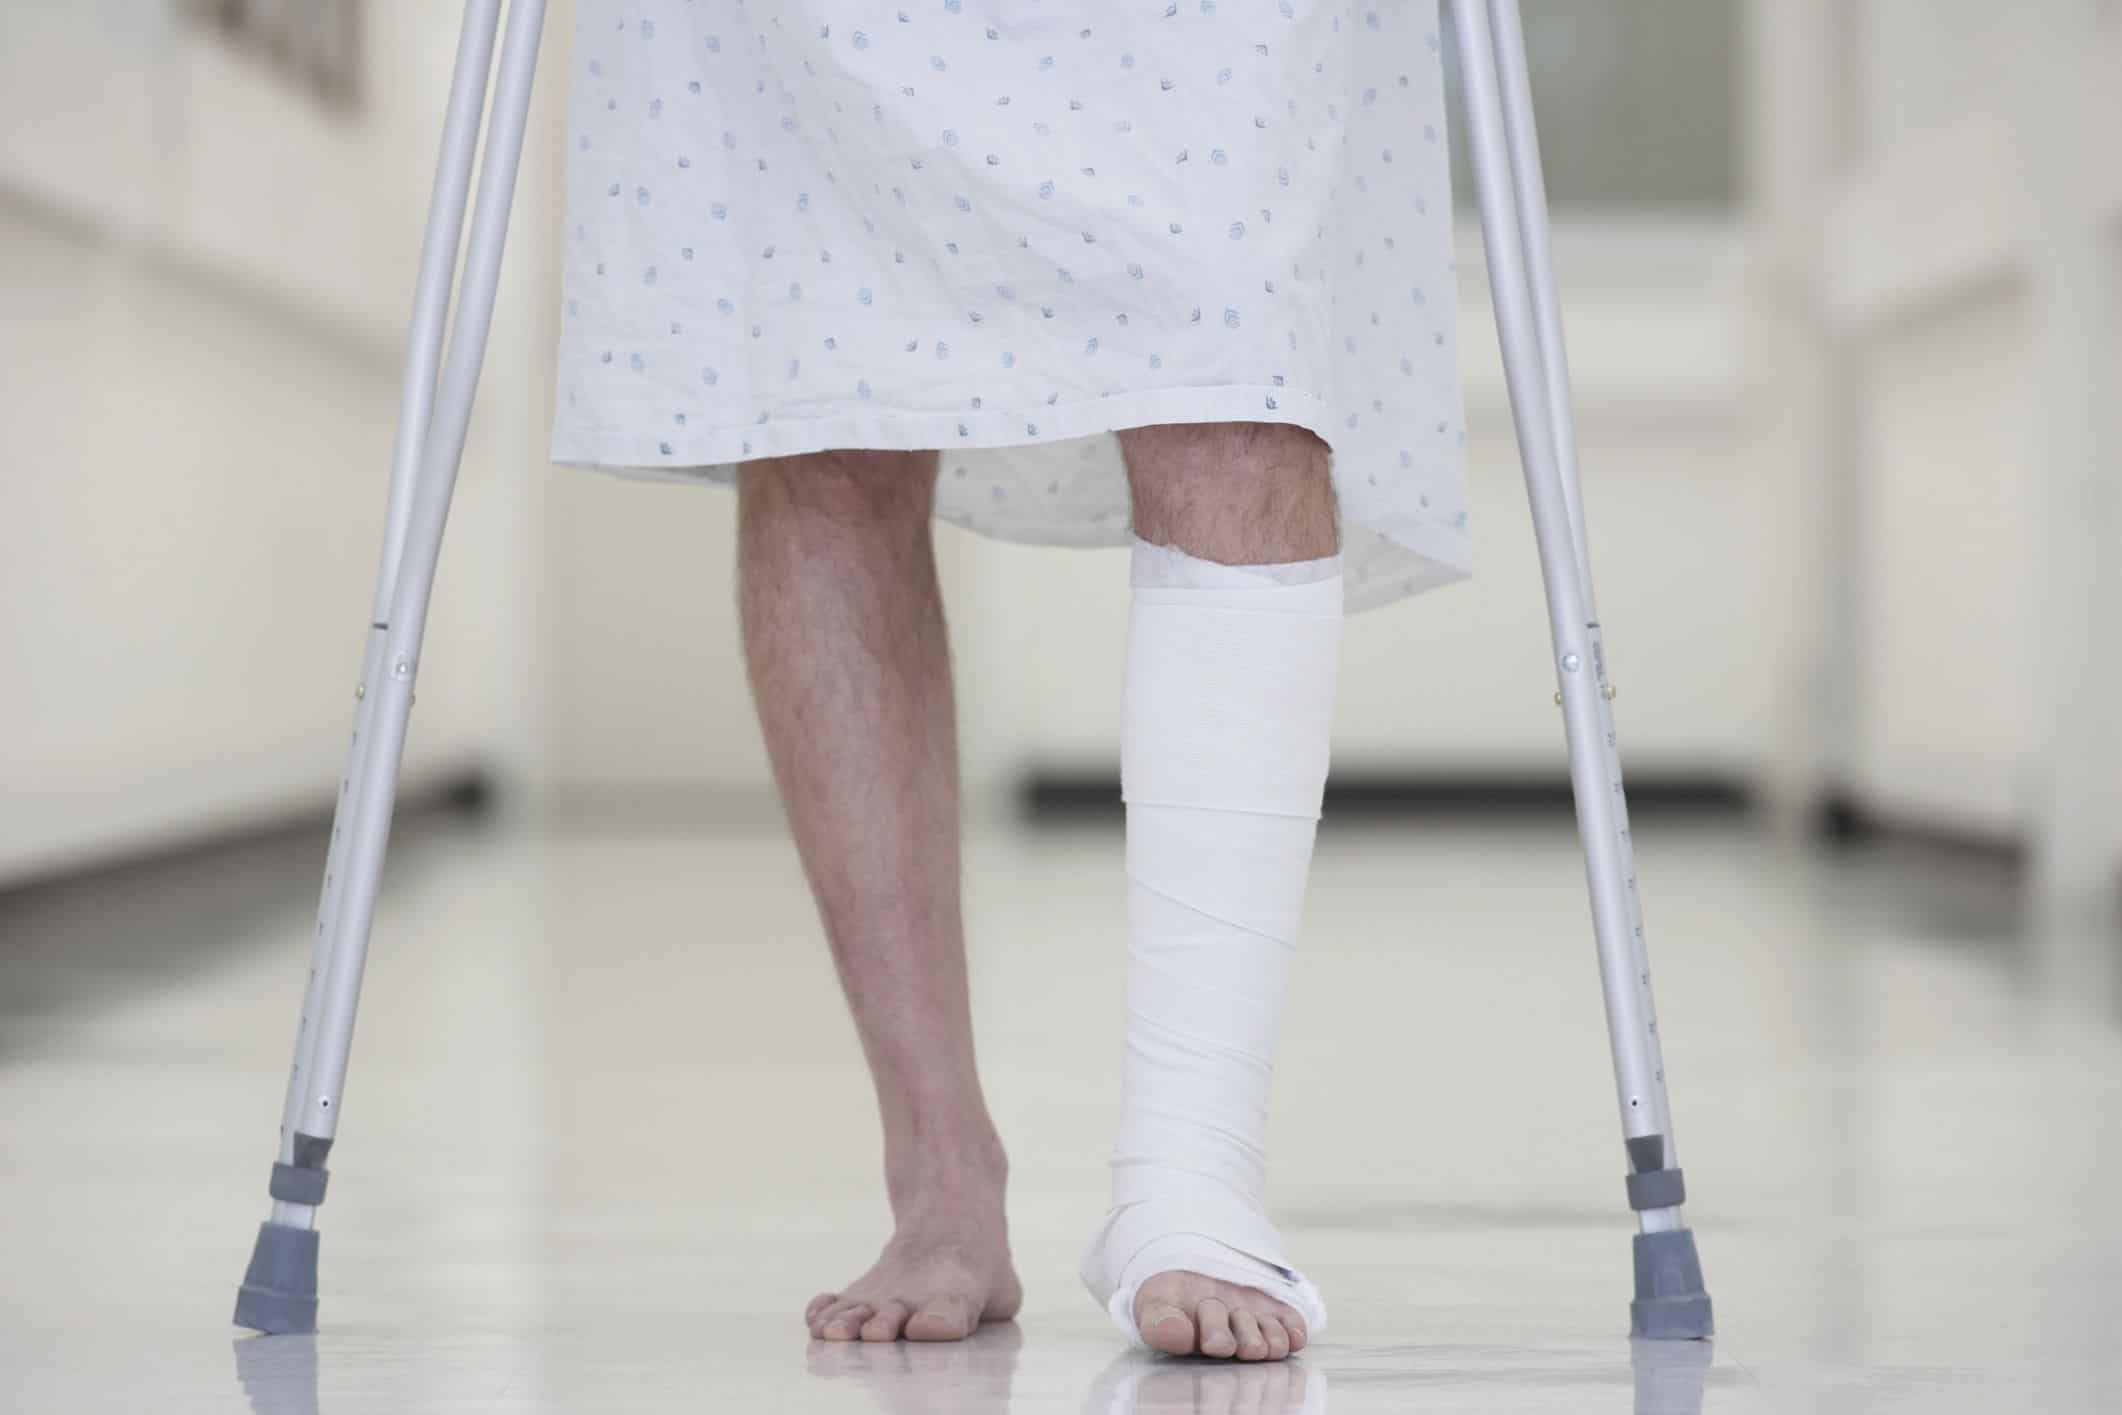 Best Crutches For Broken Ankle